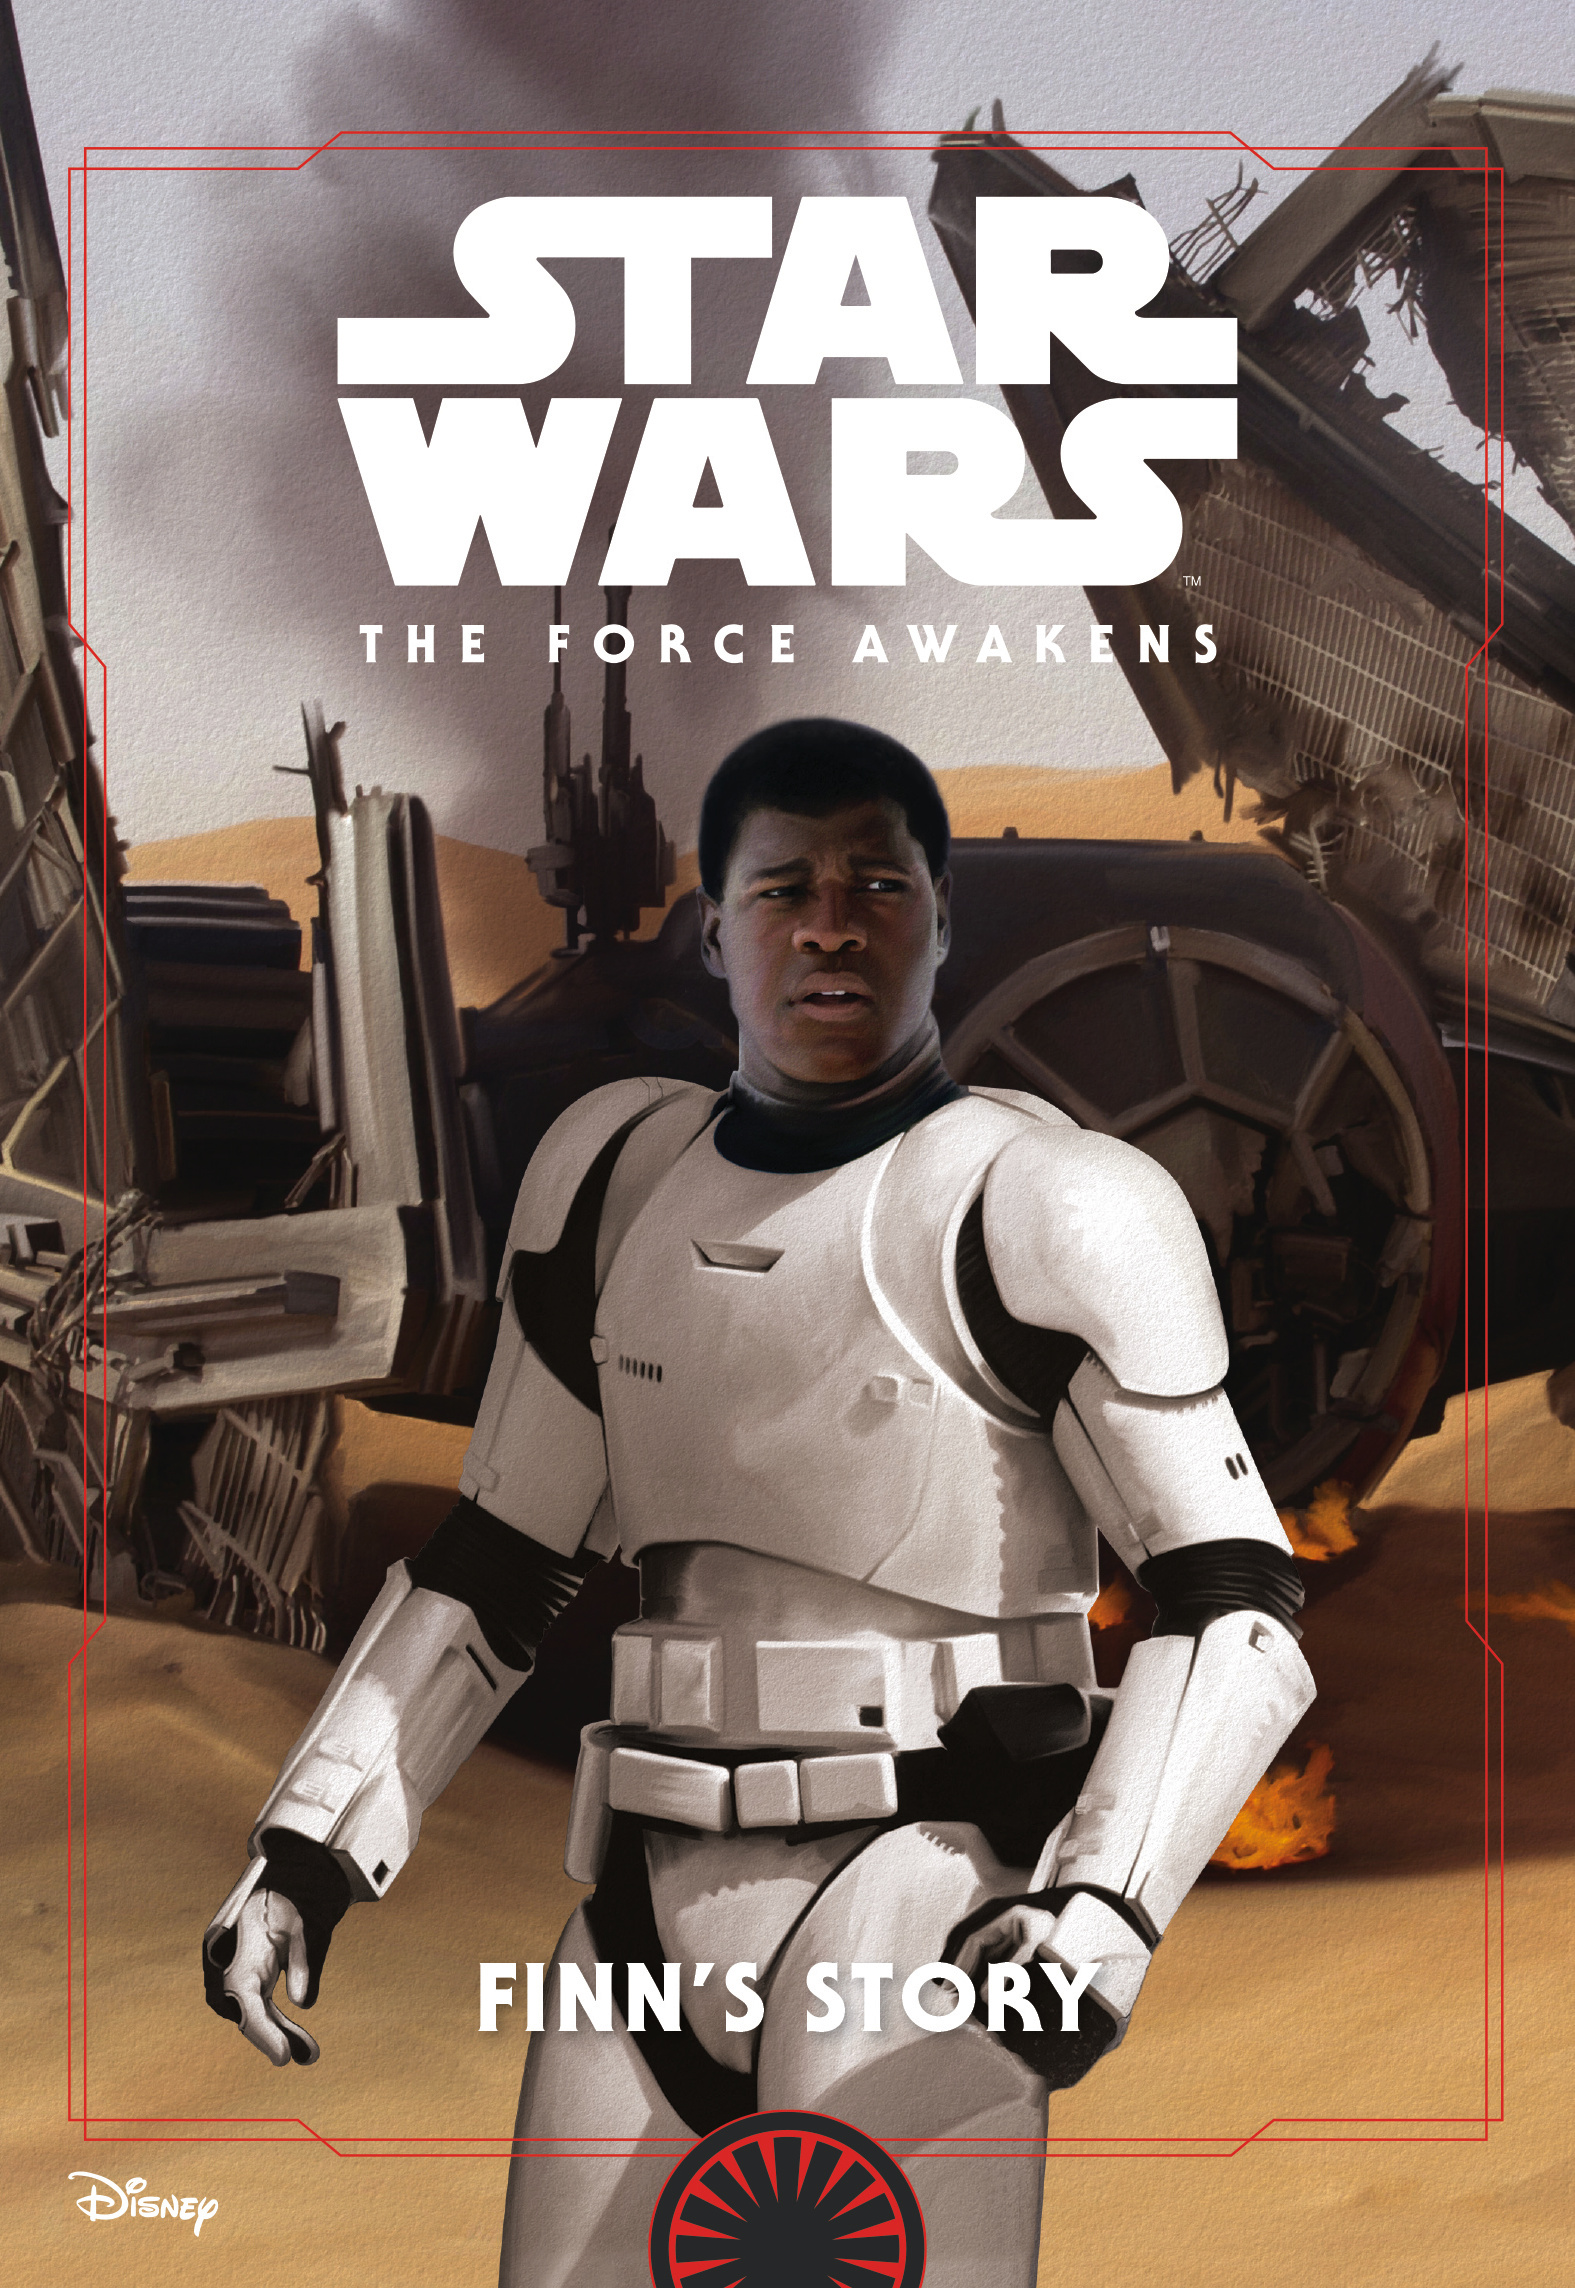 Star Wars The Force Awakens: Finn's Story